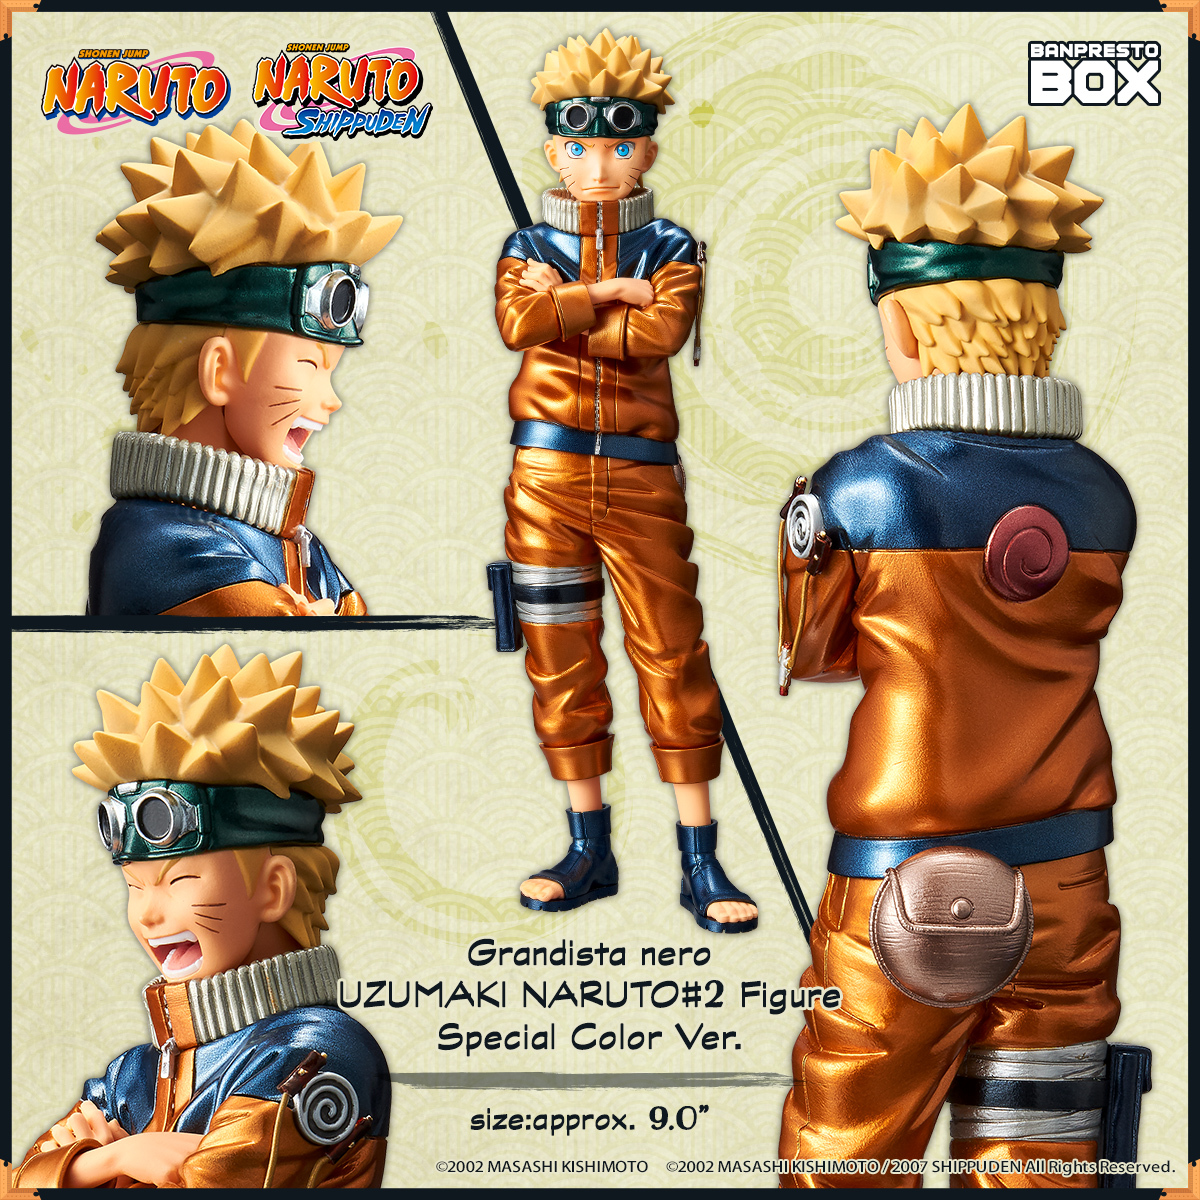 BANPRESTO BOX NARUTO